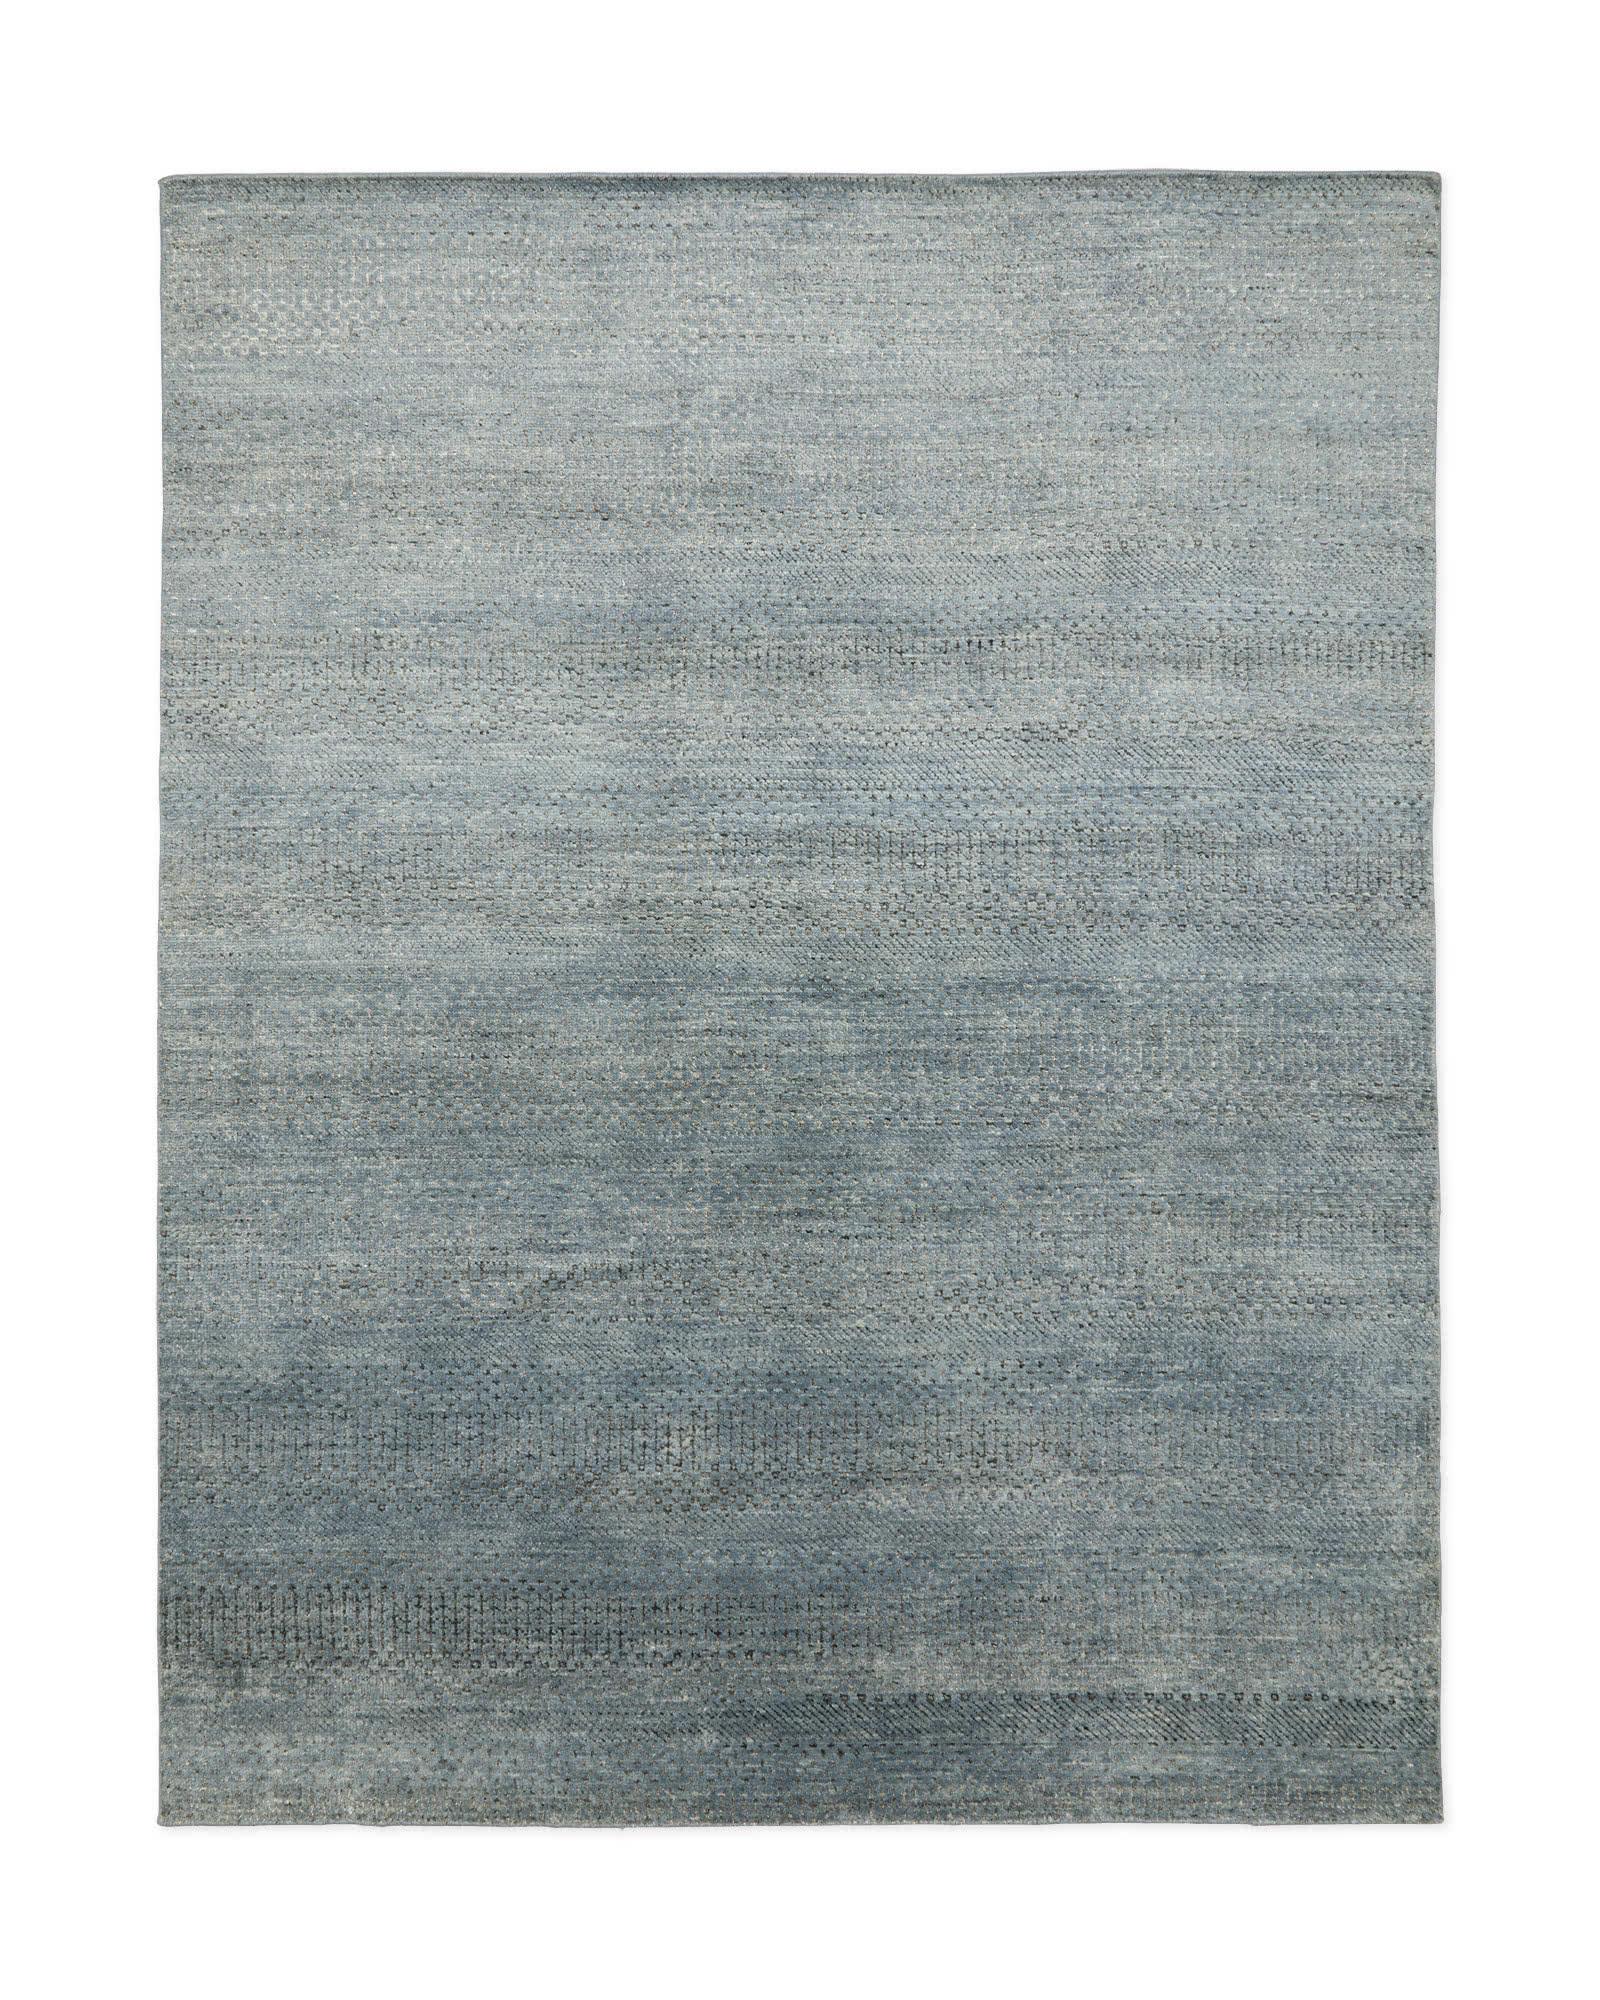 Dipsea Hand-Knotted Rug, Ocean